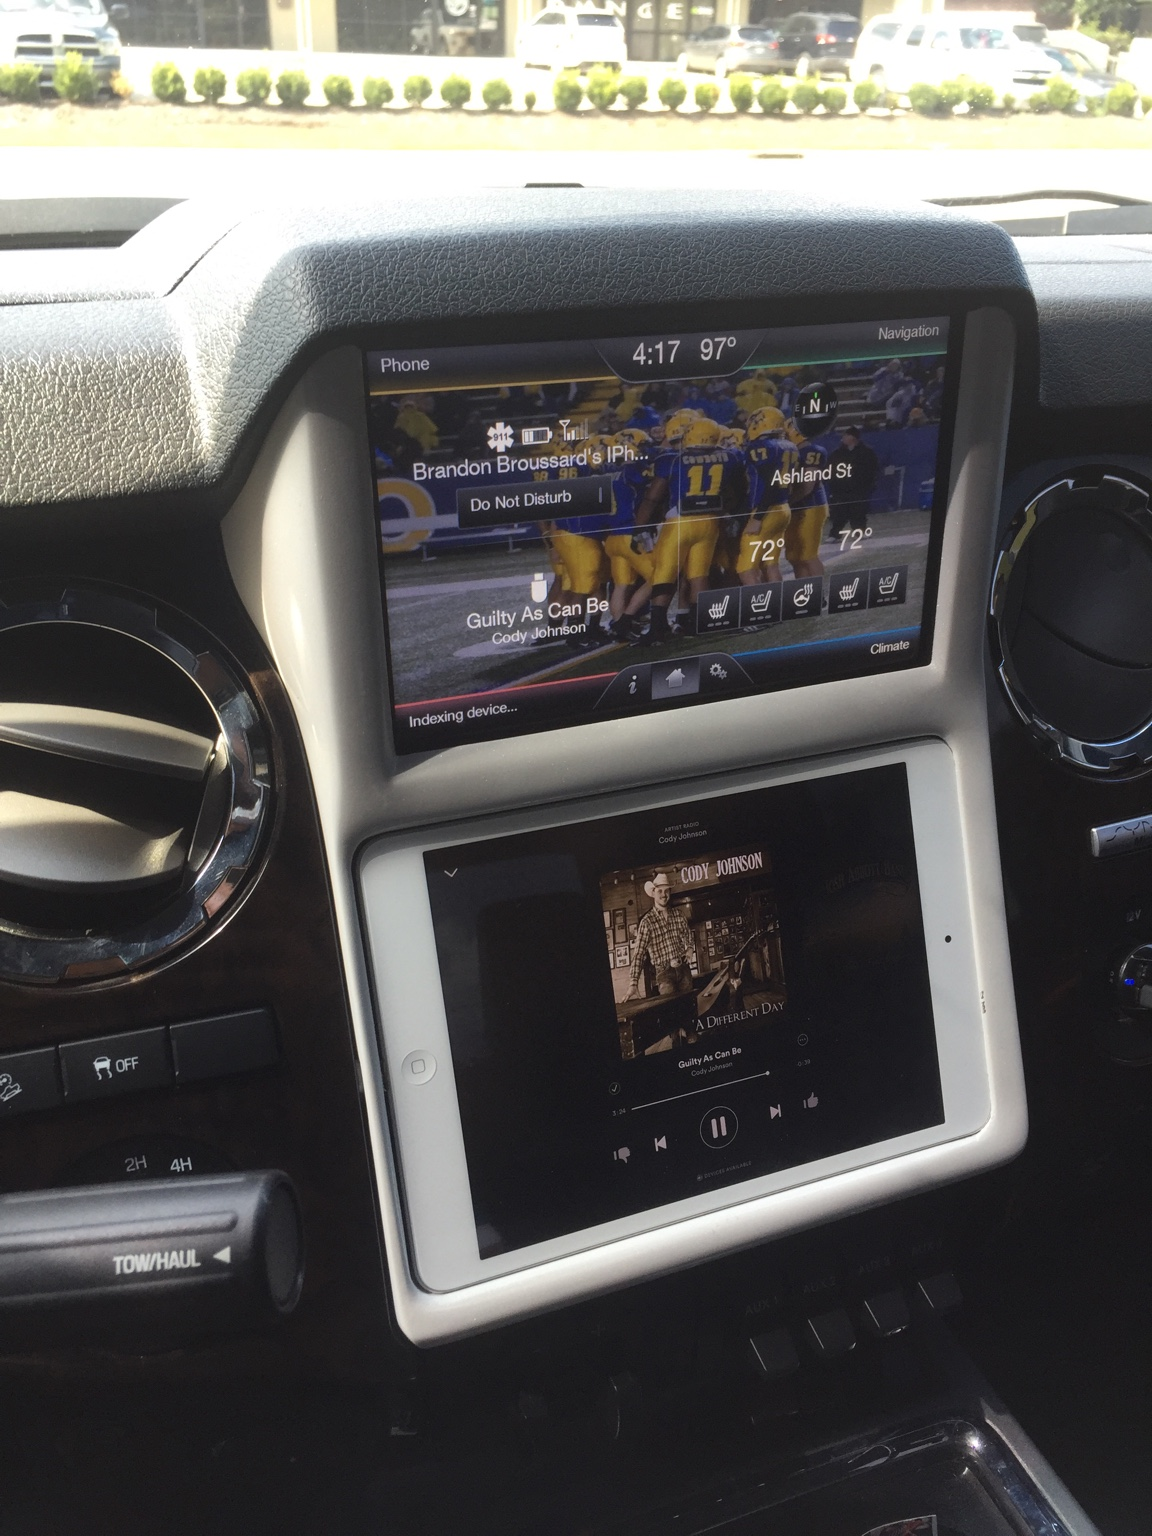 Ipad Mini In Dash Powerstrokearmy 2003 Chevy Silverado Im Curious To See How Yours Turns Out I Installed The Retrocustomz A While Back And Really Like It